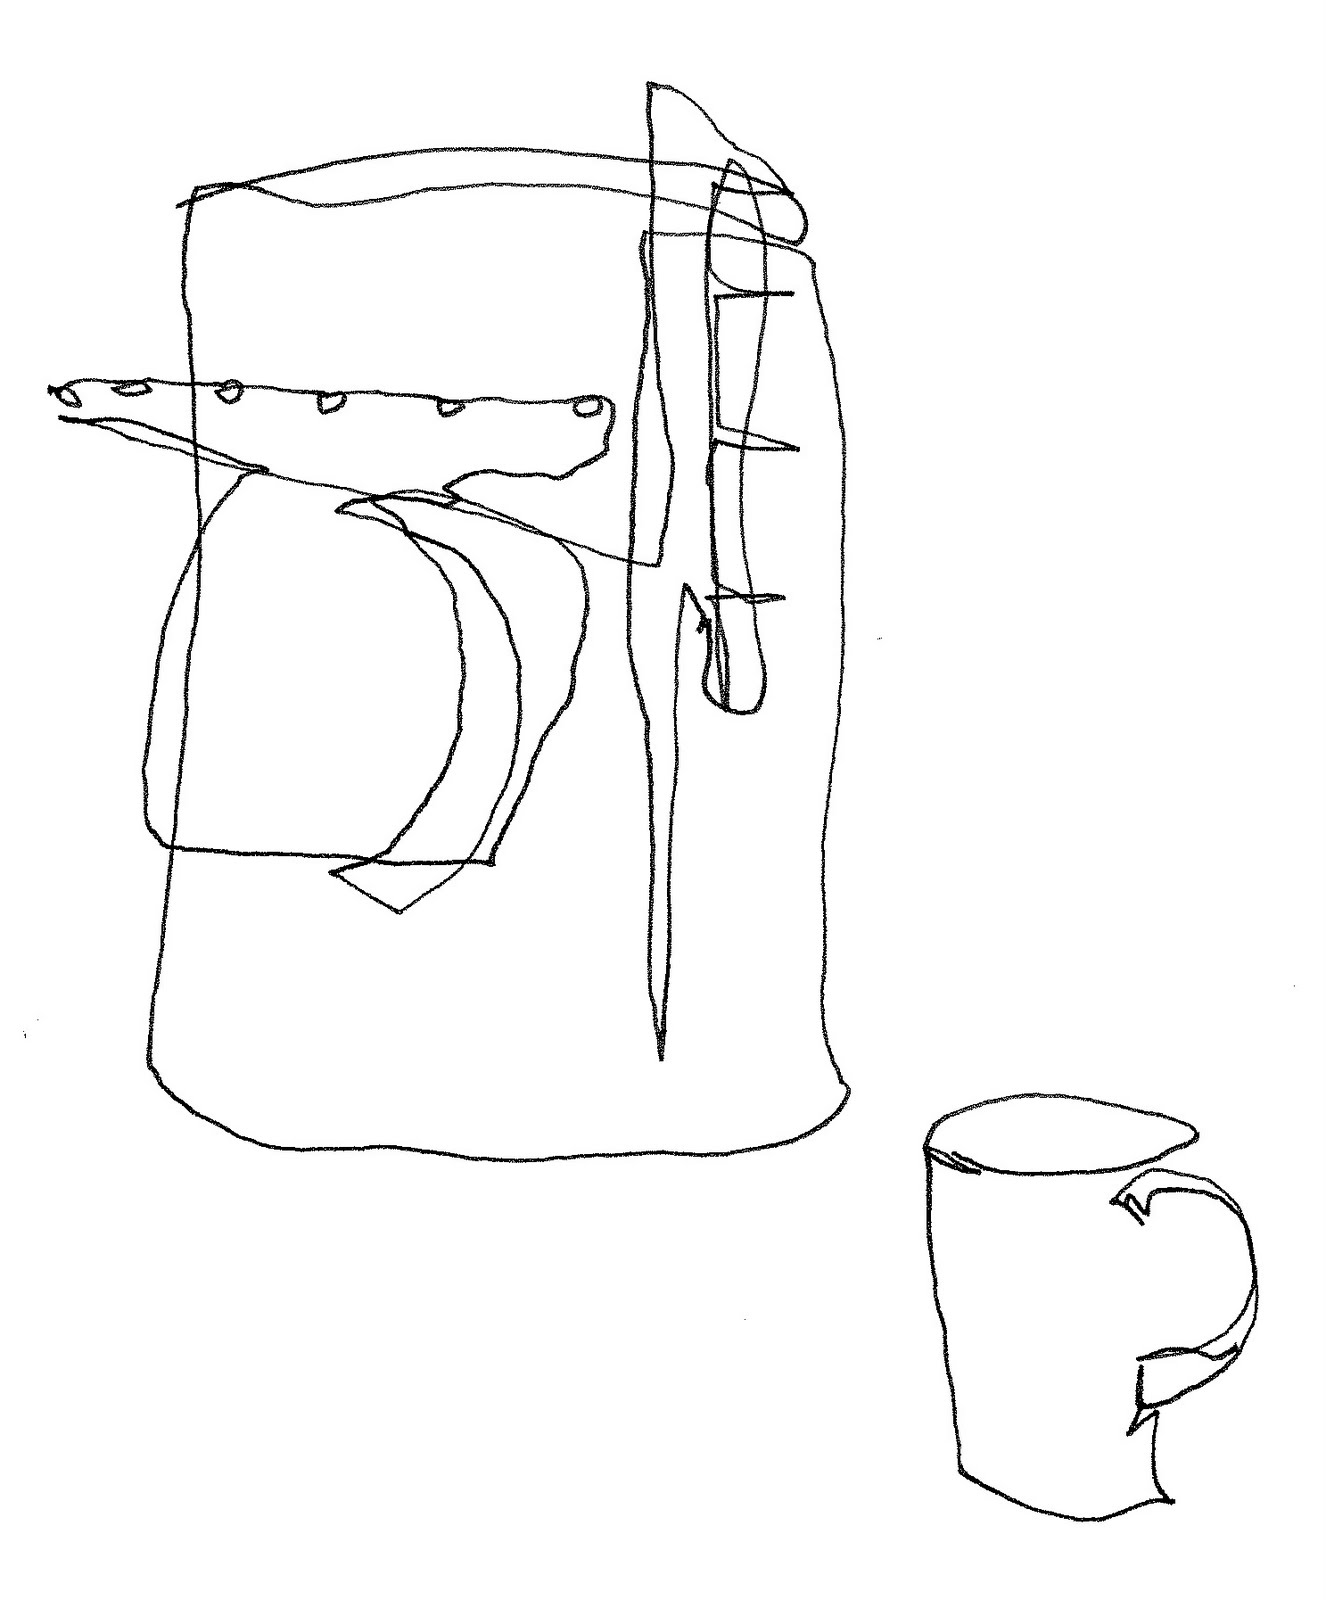 Contour Line Drawing Books : The quotidian journal coffee is on